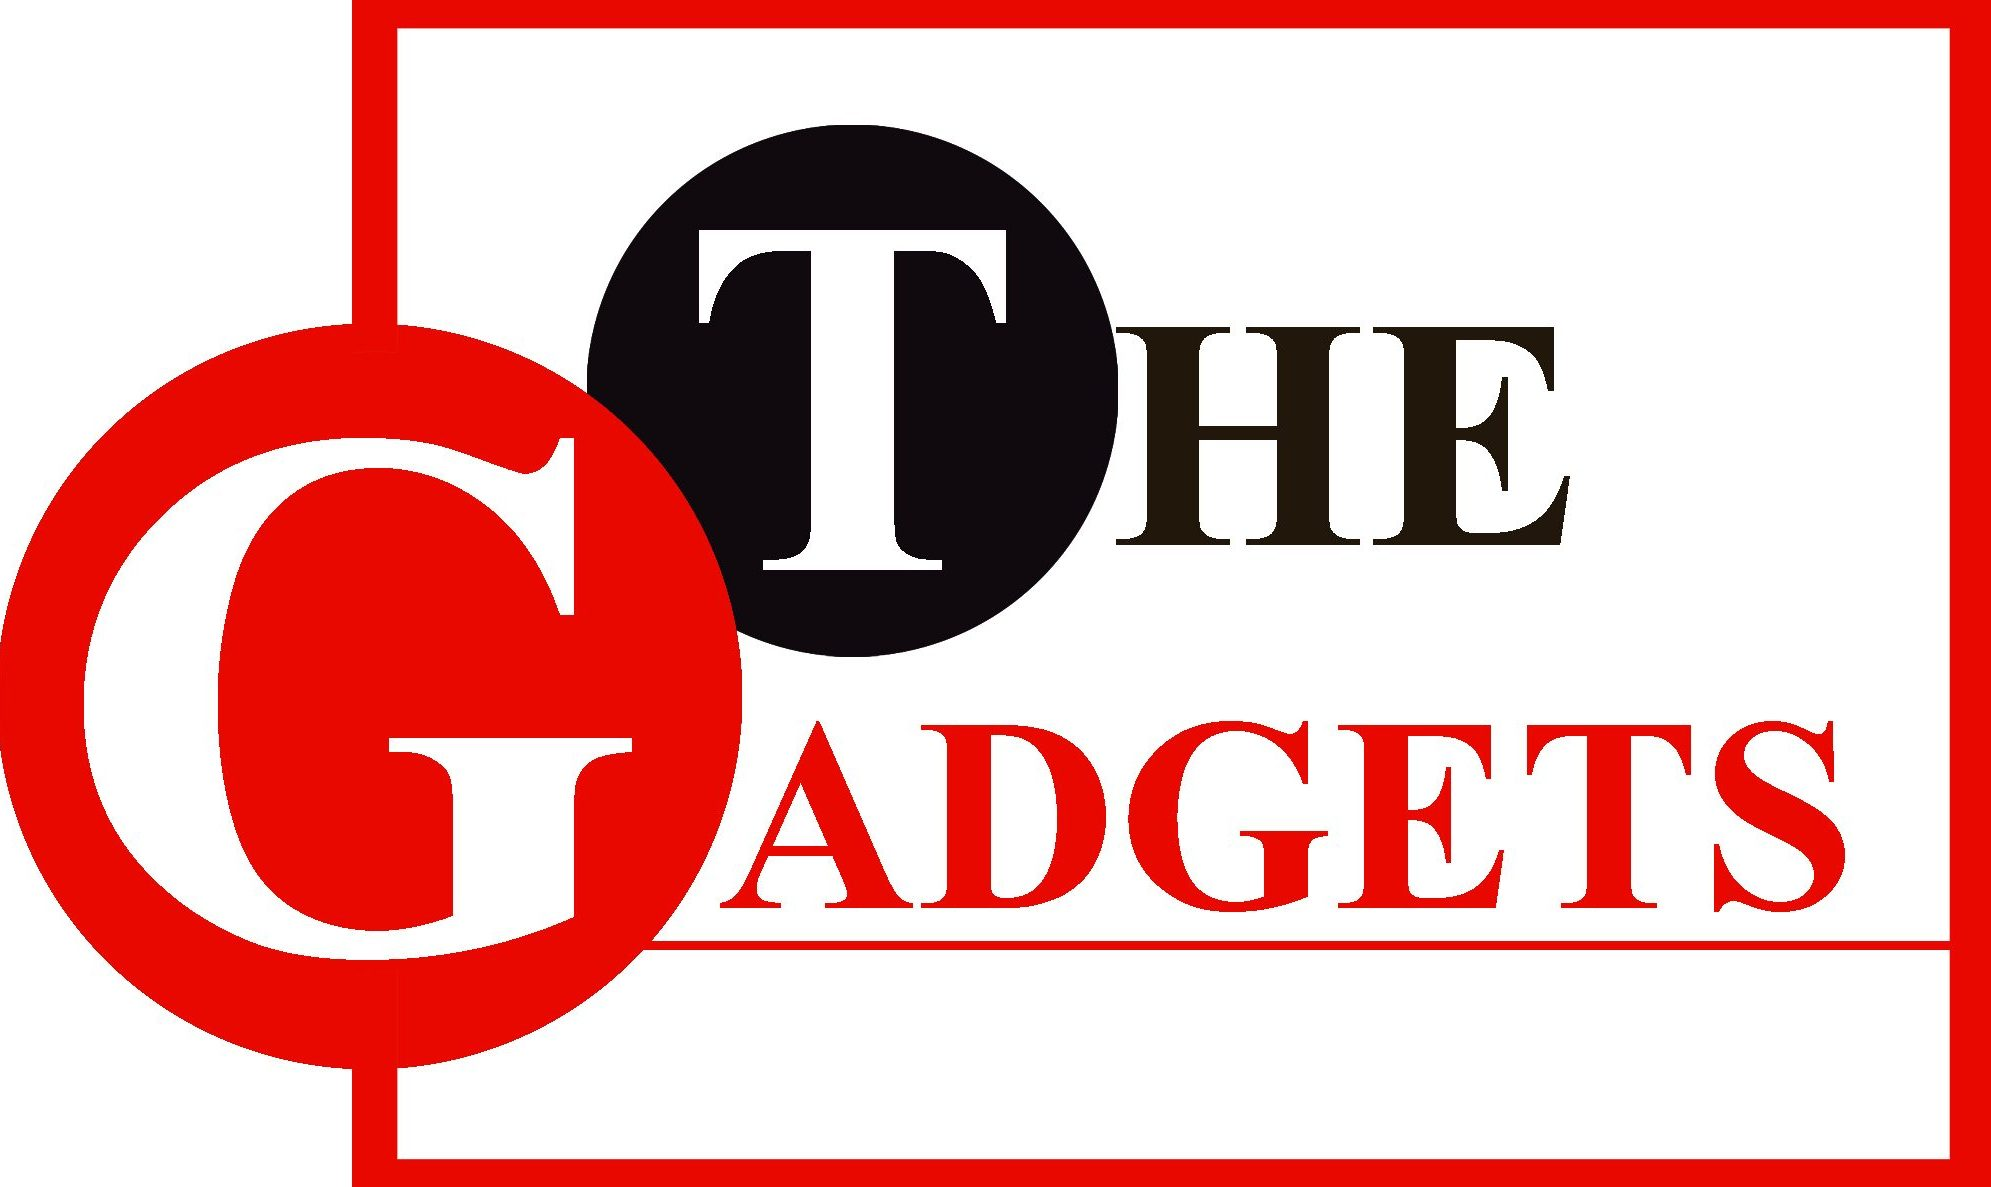 The Gadgets